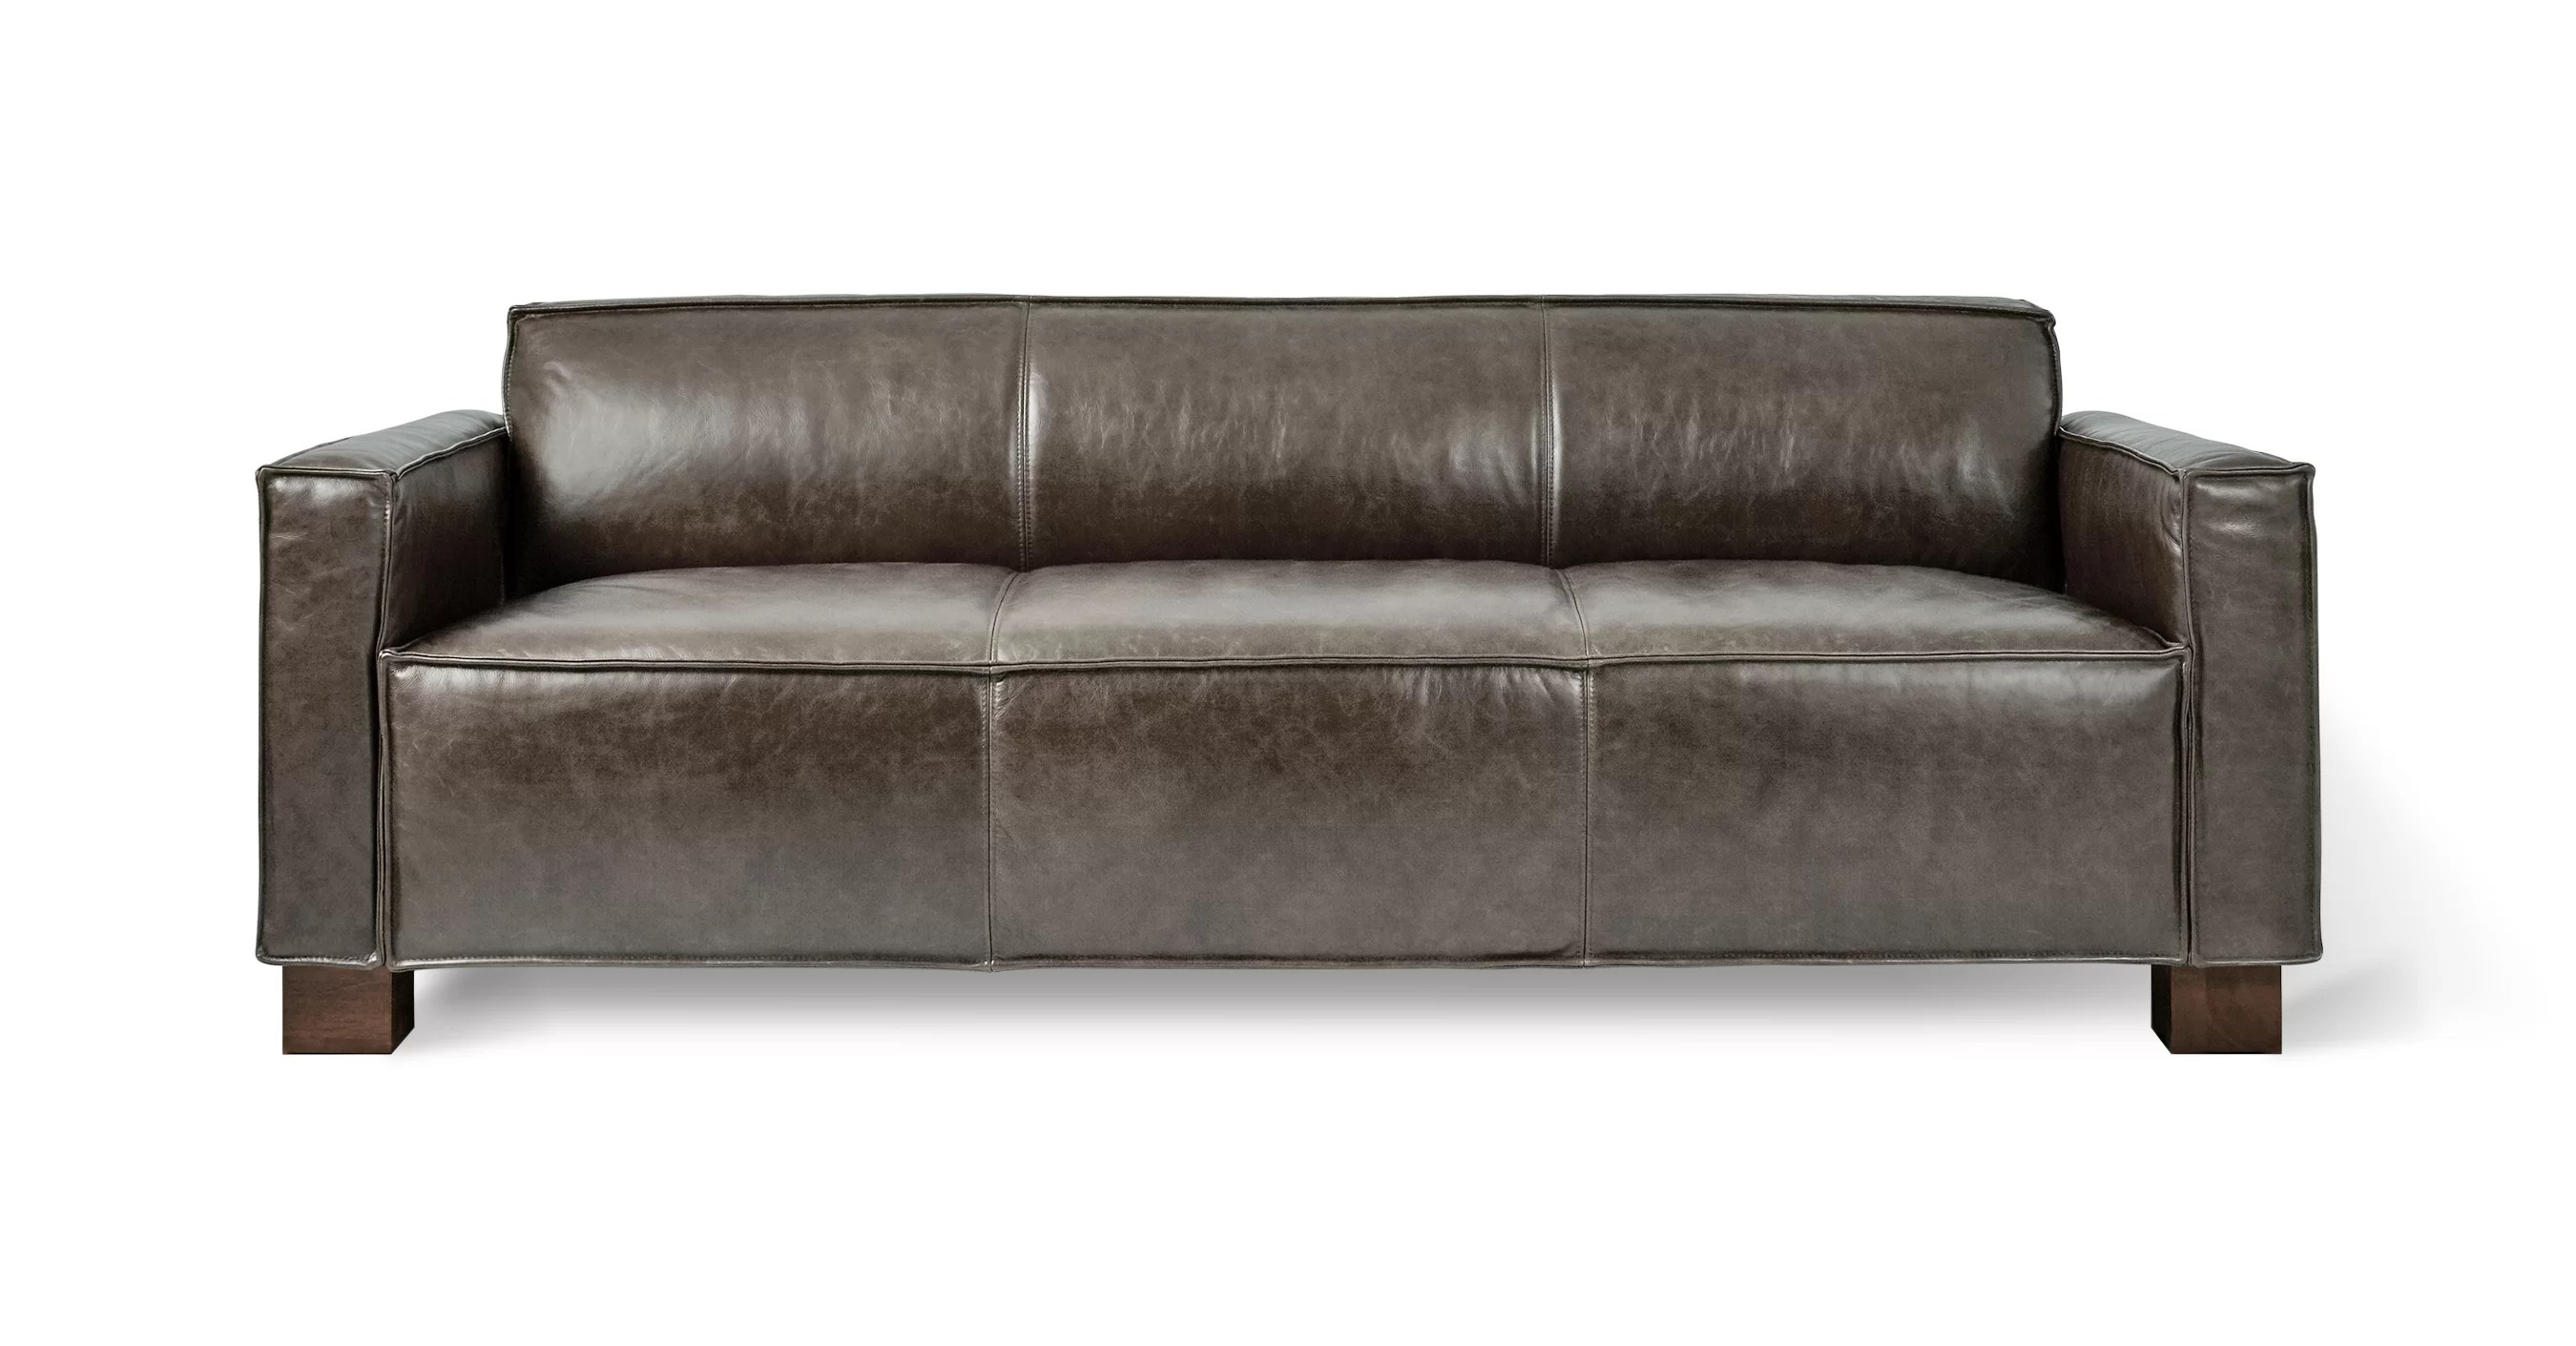 Sofa Entertainment Group Llc Cabot Leather Sofa